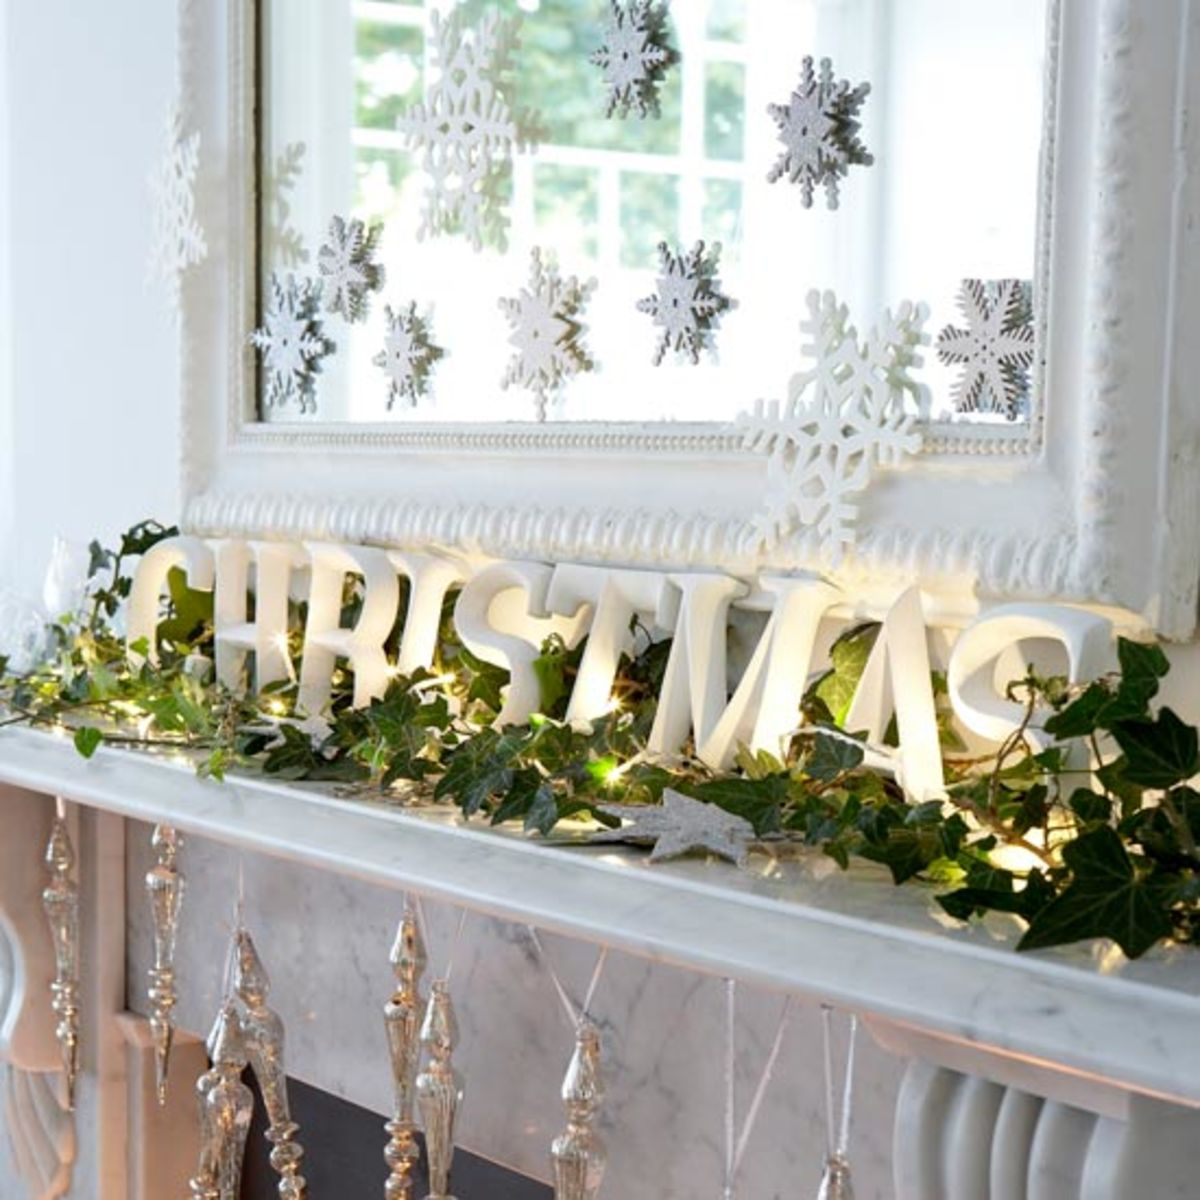 Home Design Ideas Budget: Home Decorating On A Budget: Christmas Decoration Ideas